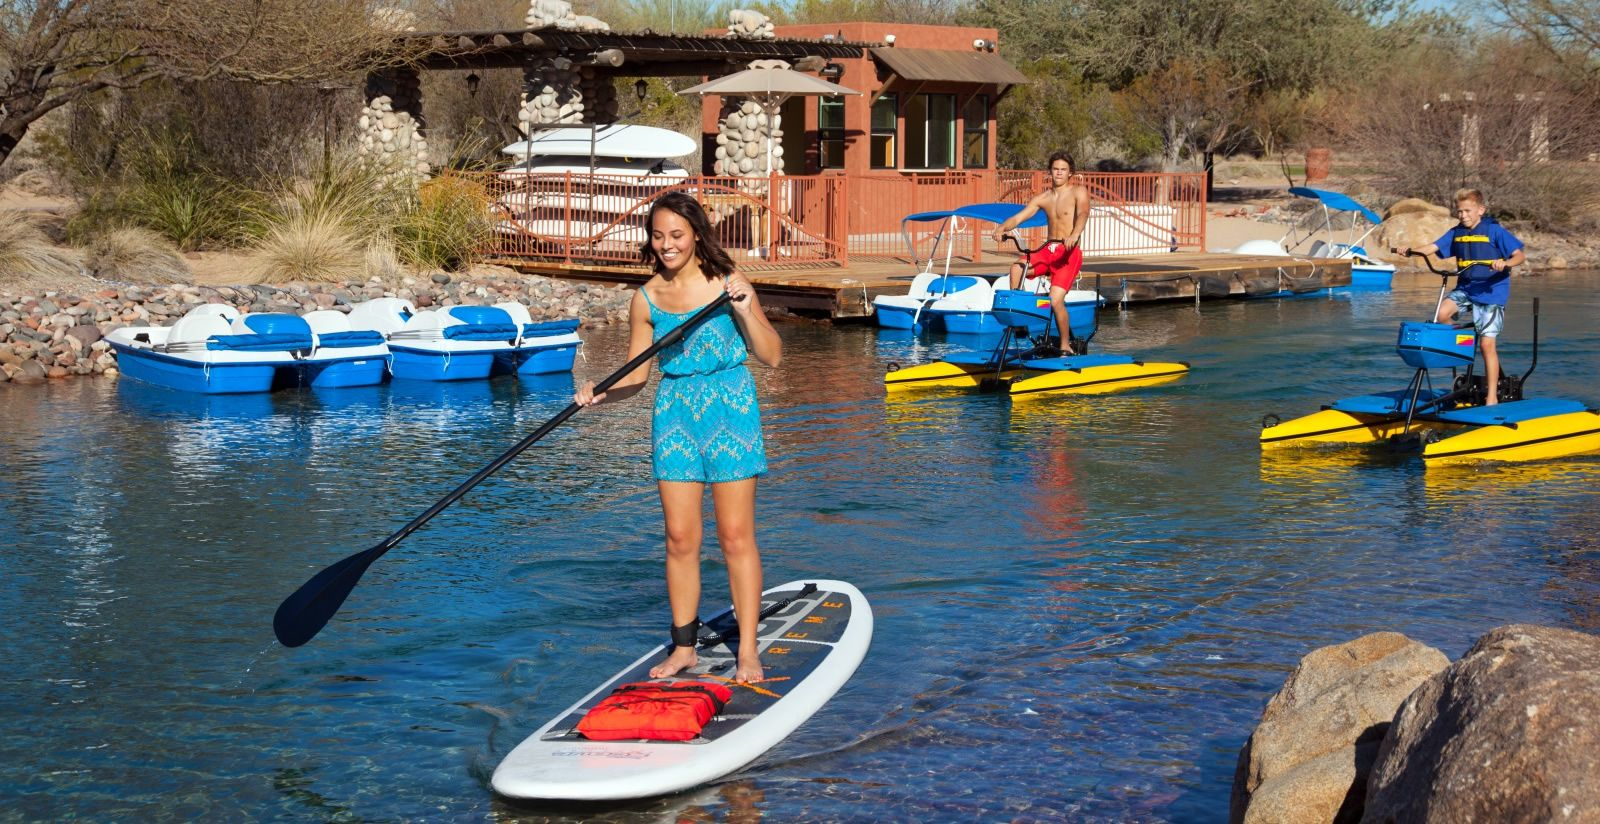 stand-up-paddle-board-002-